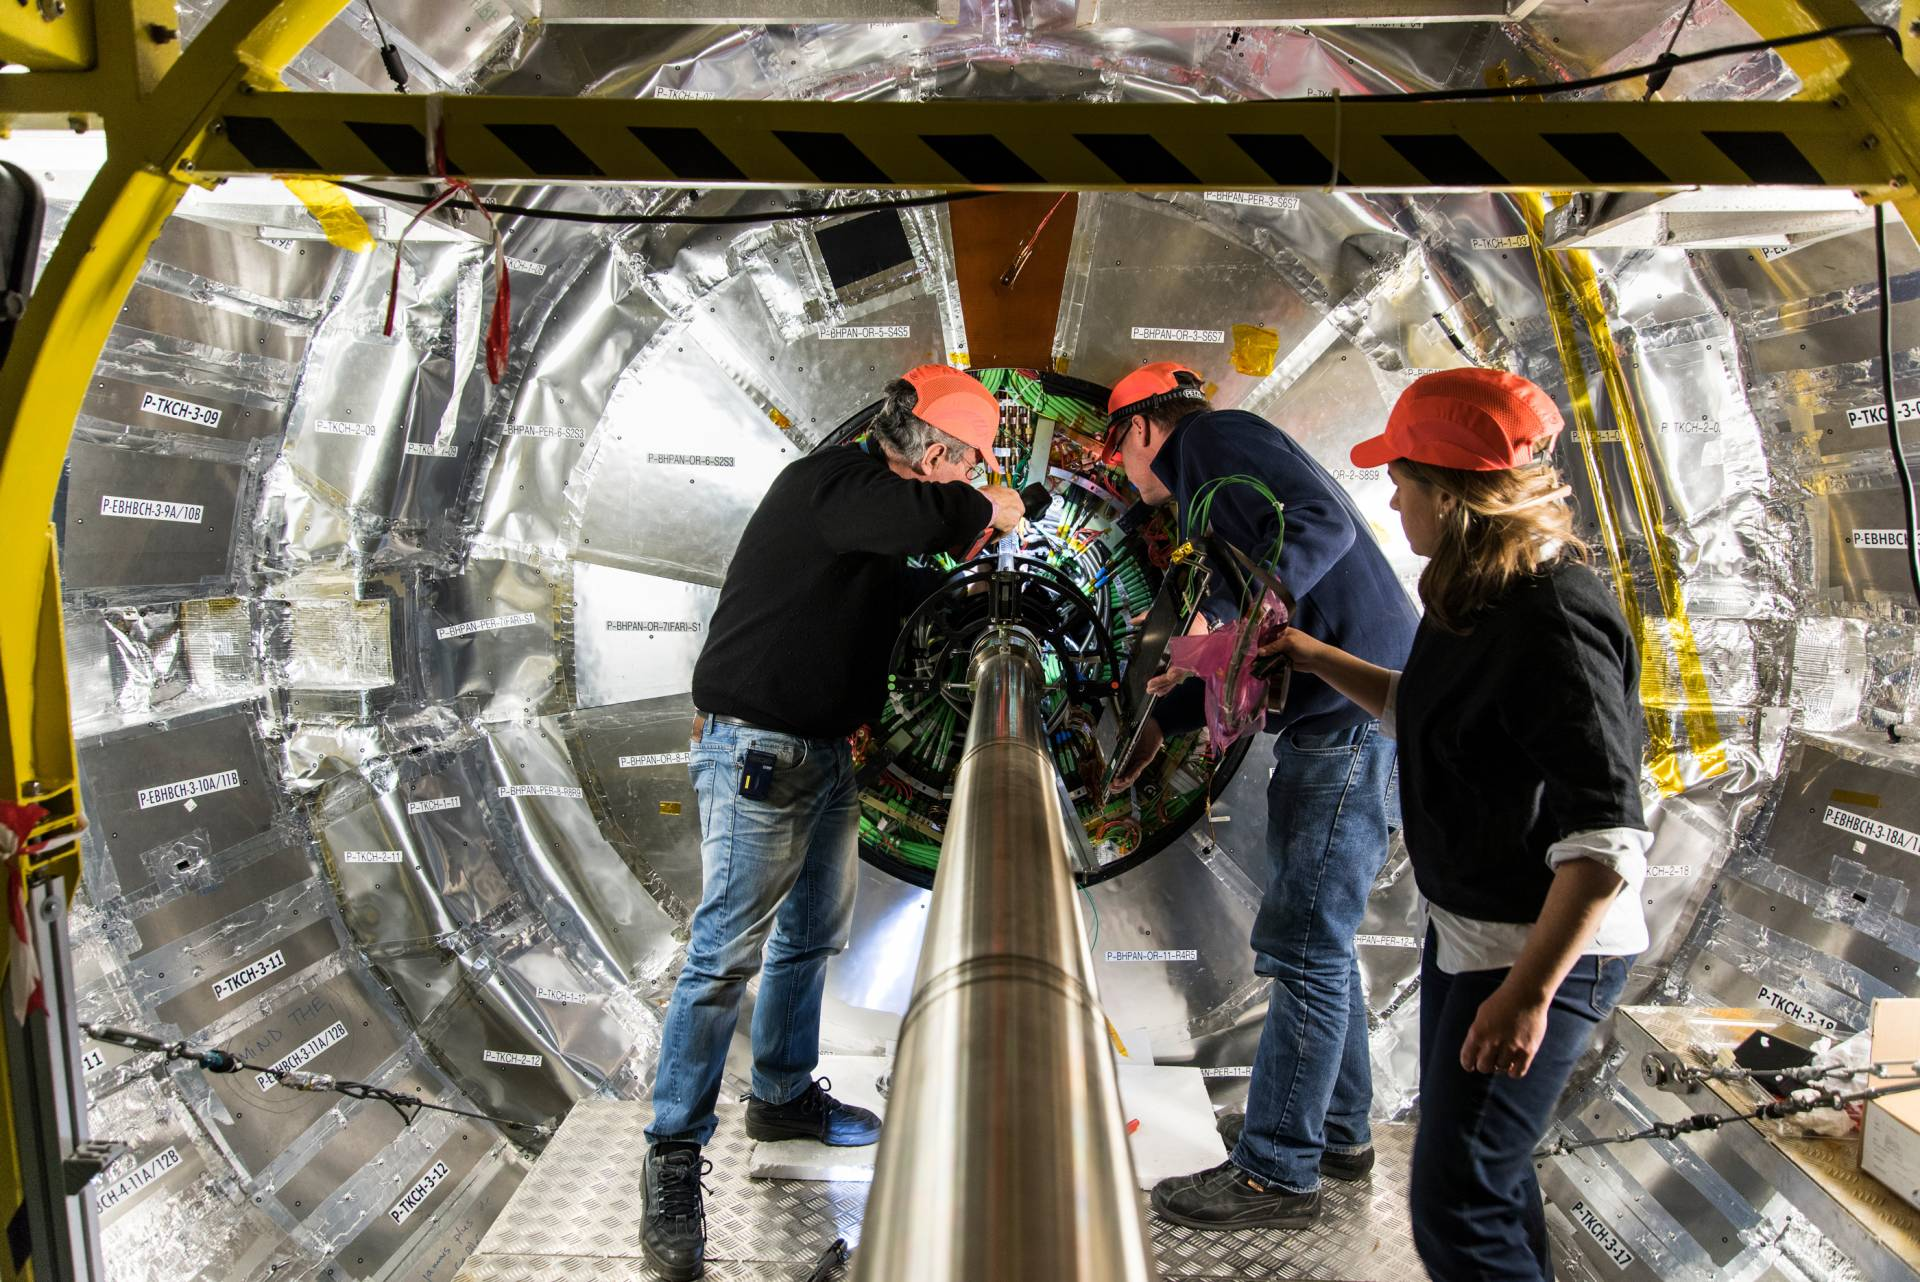 Princeton physicists and engineers work on the installation of the pixel luminosity telescope of the CMS experiment